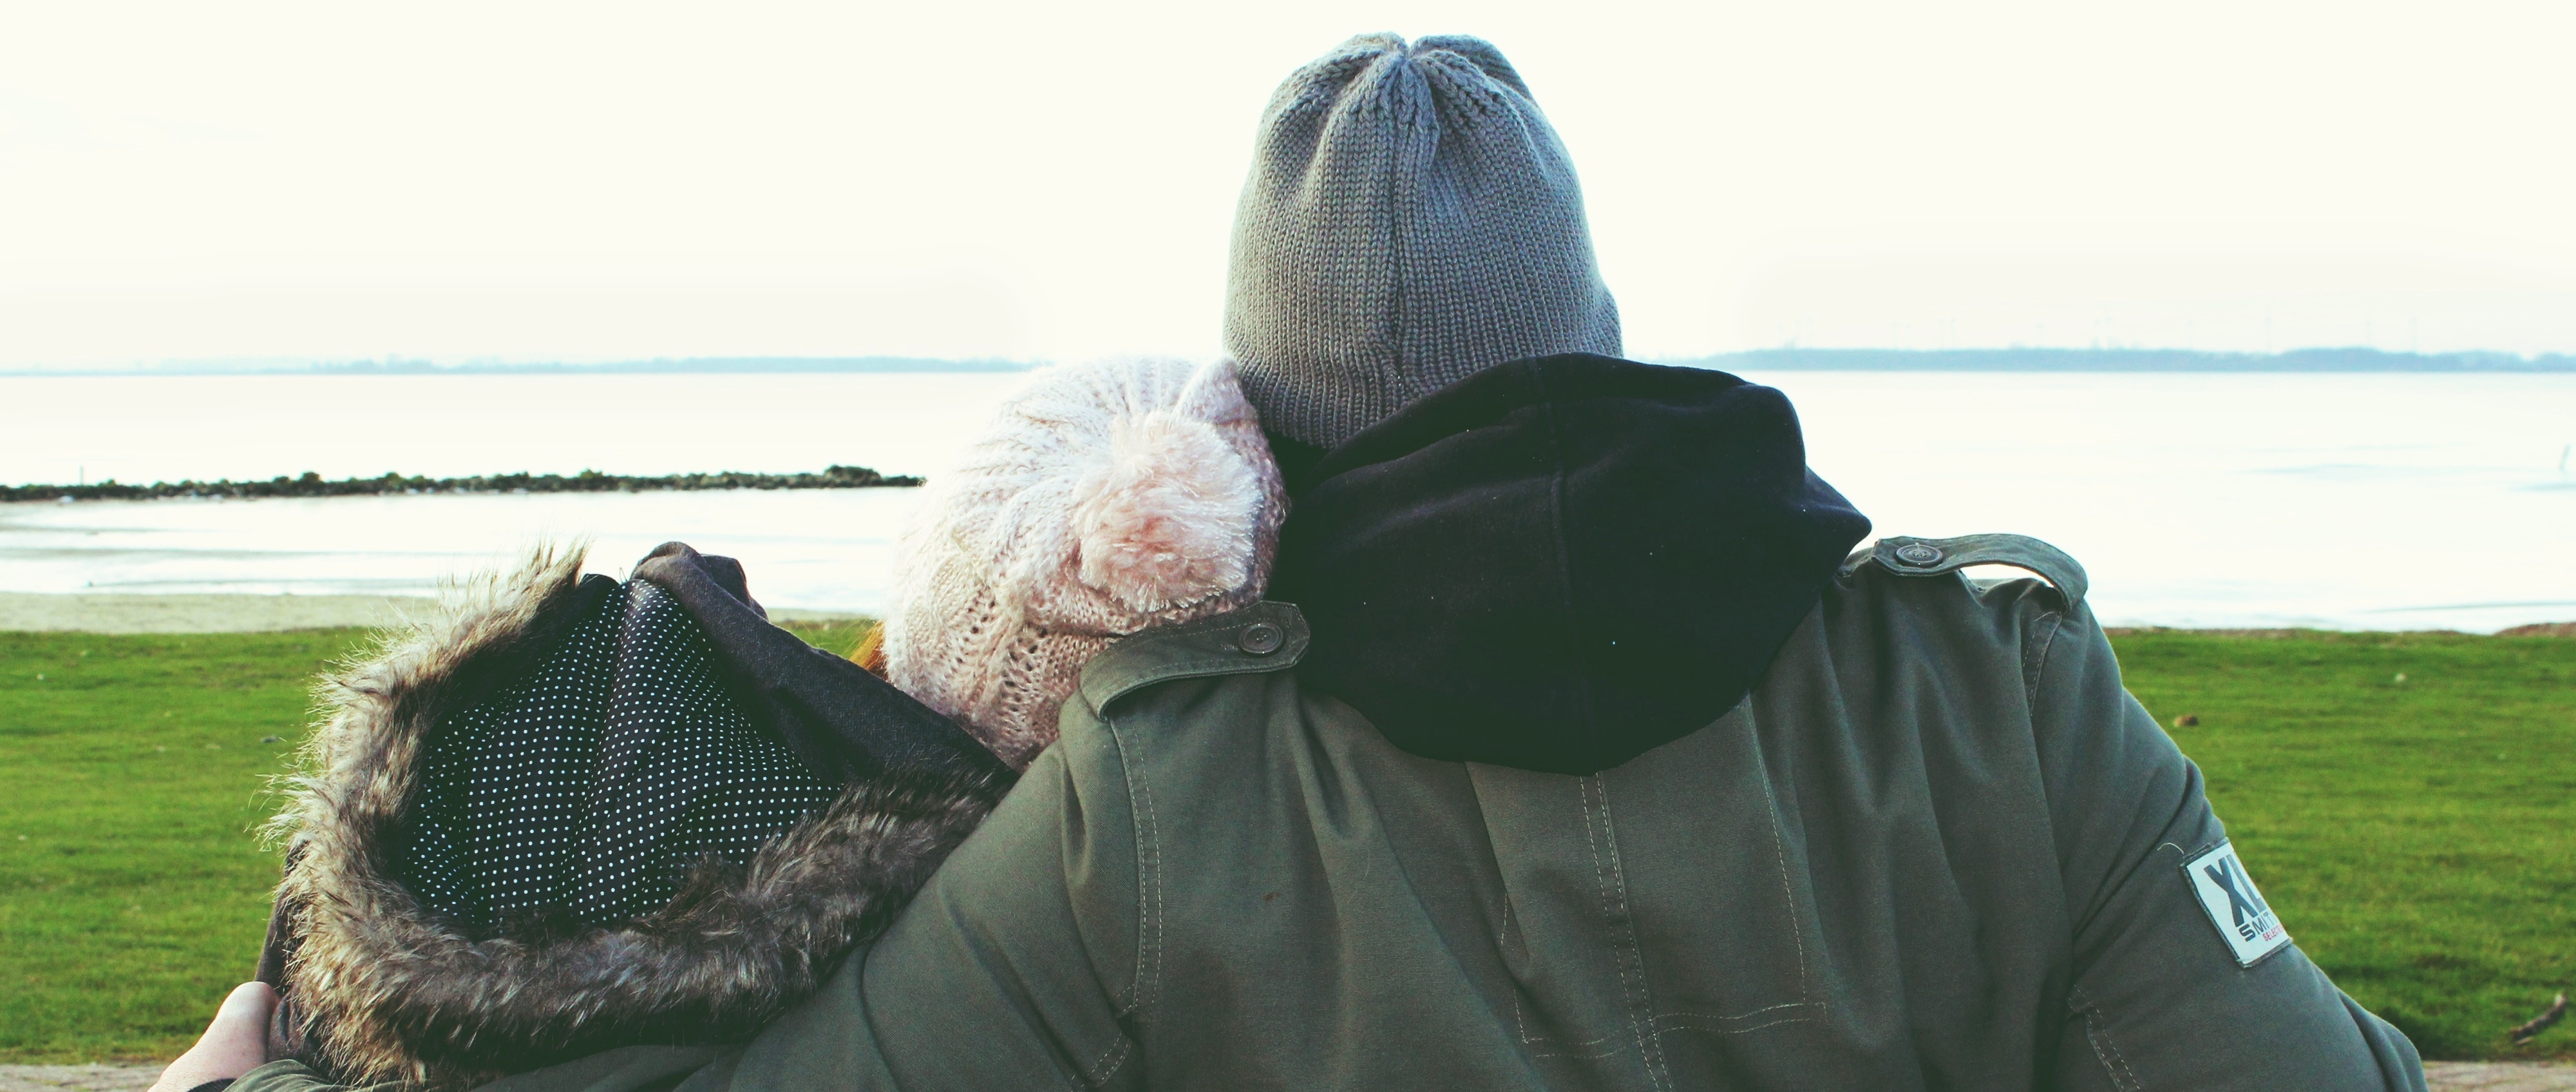 Back head shot of a man and woman in winter coats looking at a body of water while sitting on a bench.